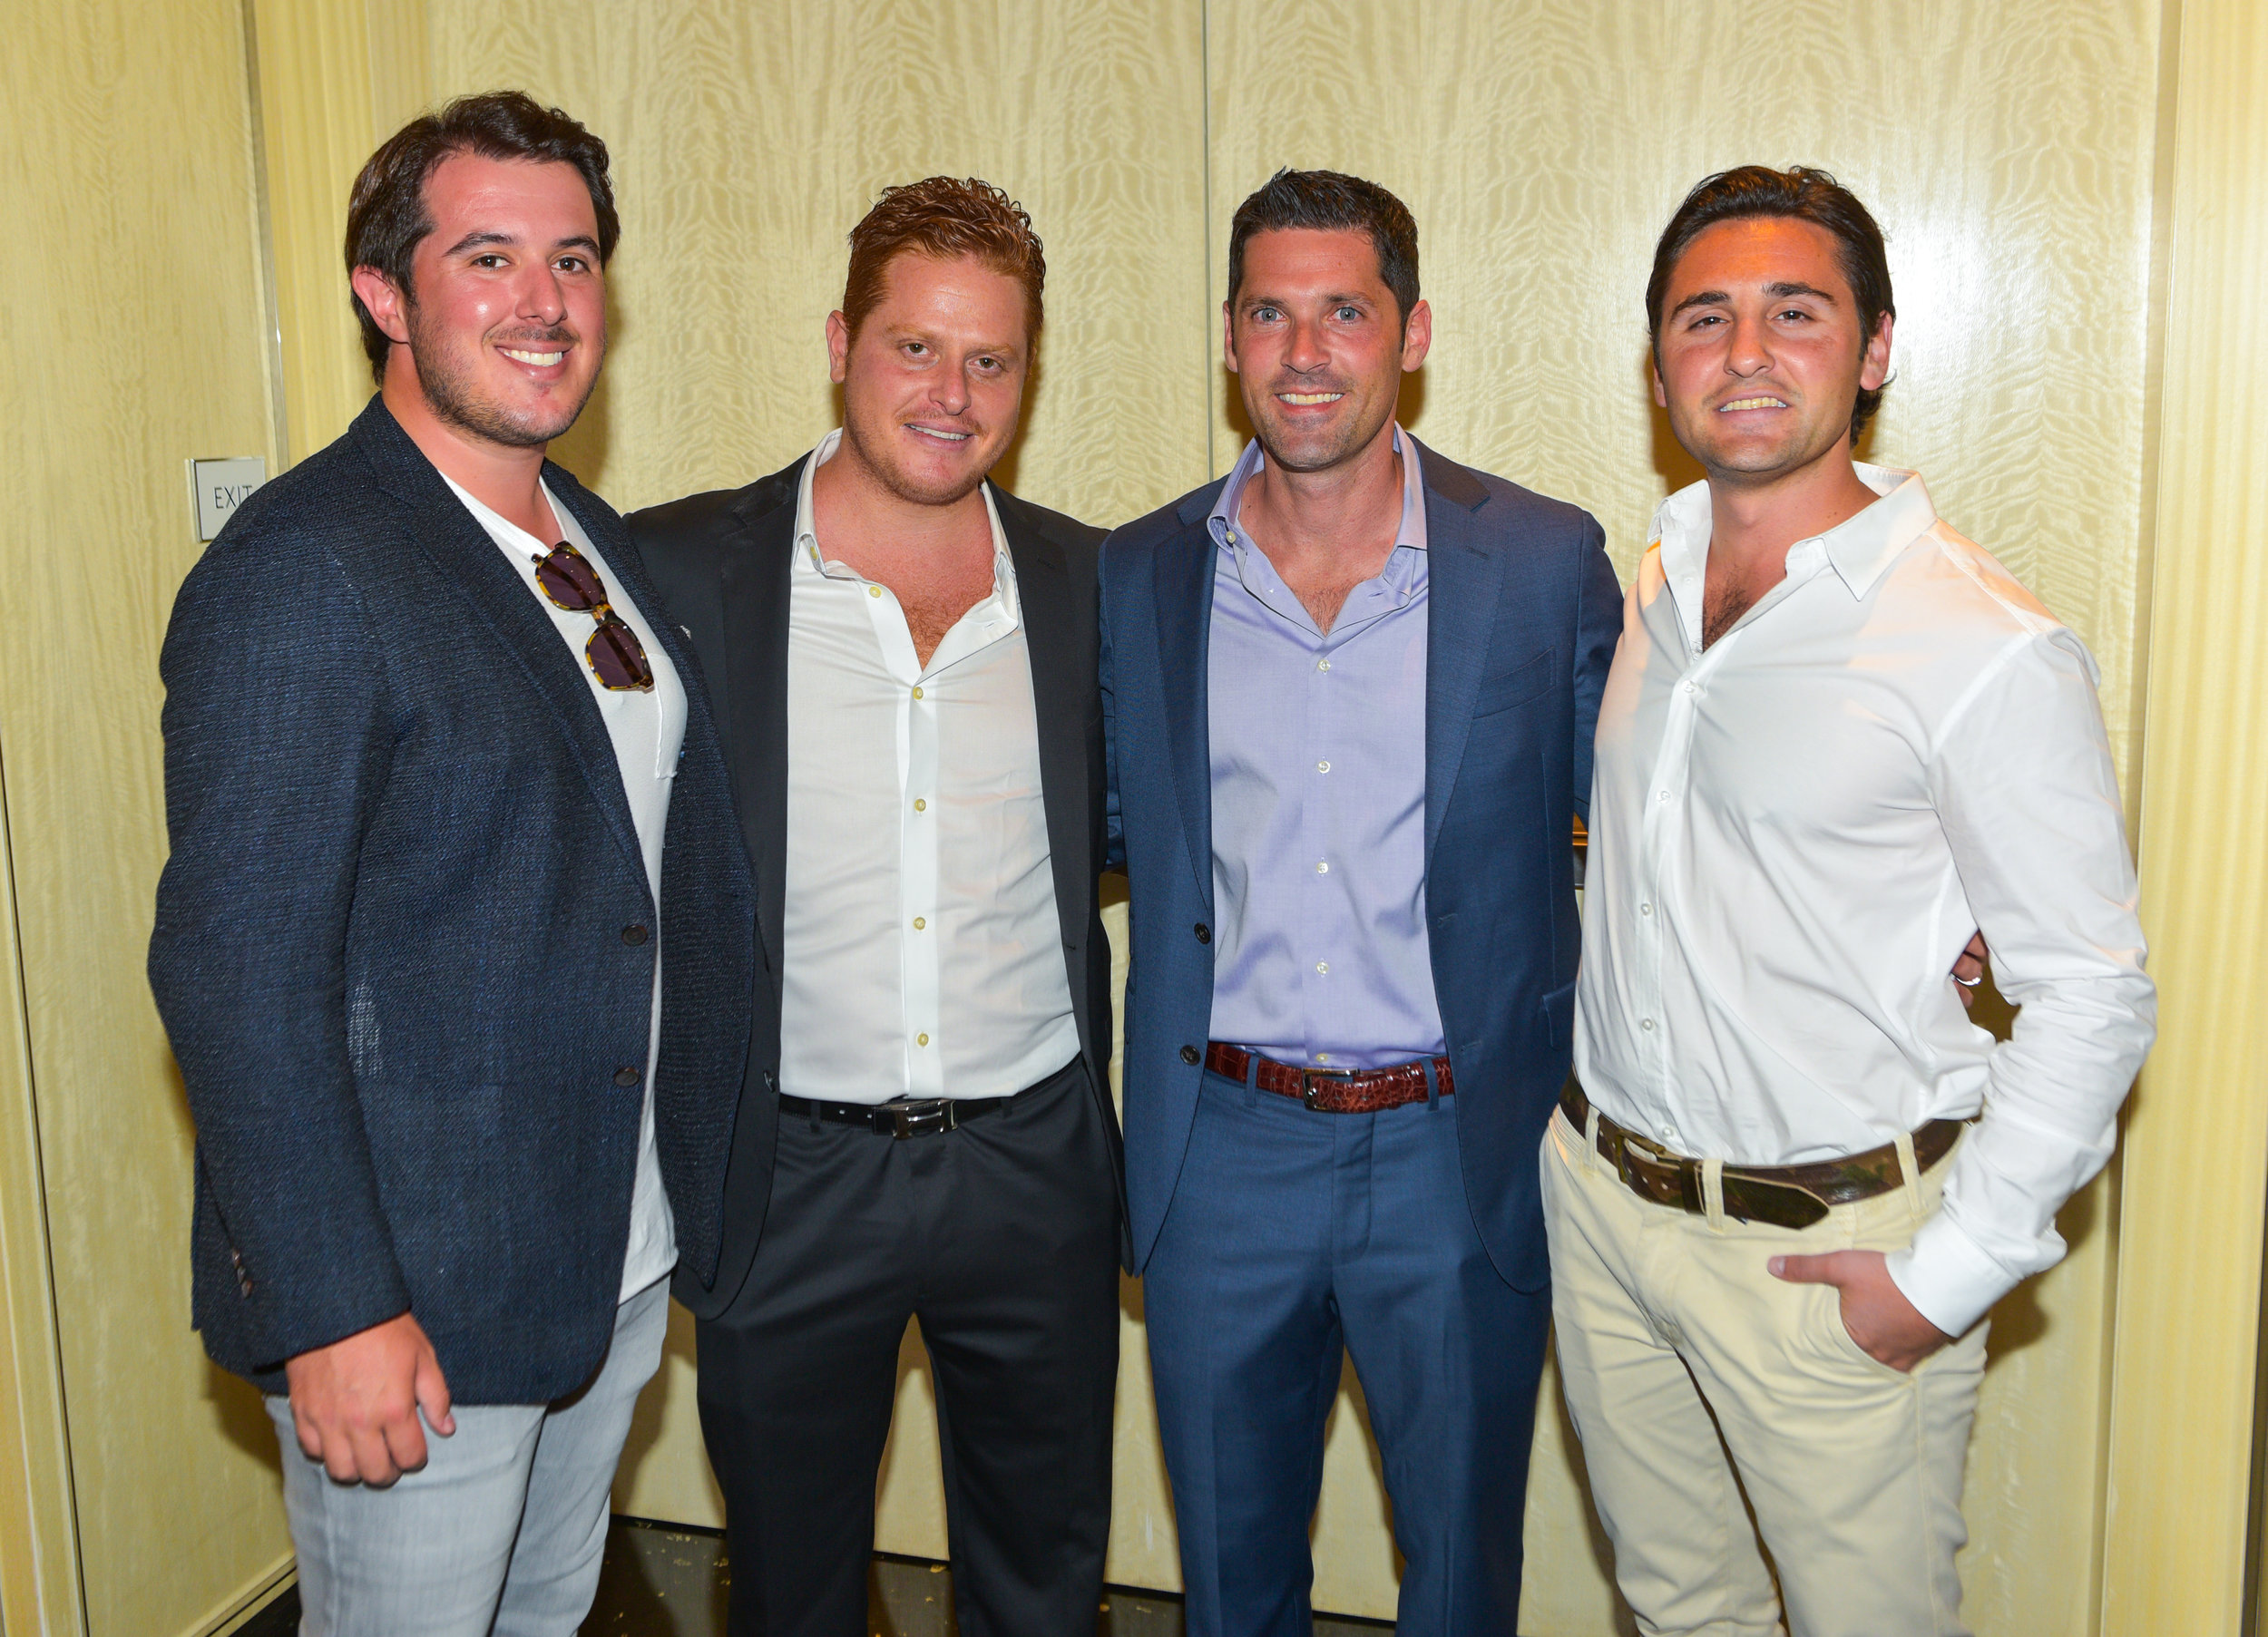 Chad Carroll Douglas Elliman Honors Top Agents at The Florida Ellie's, Their Annual Awards Show